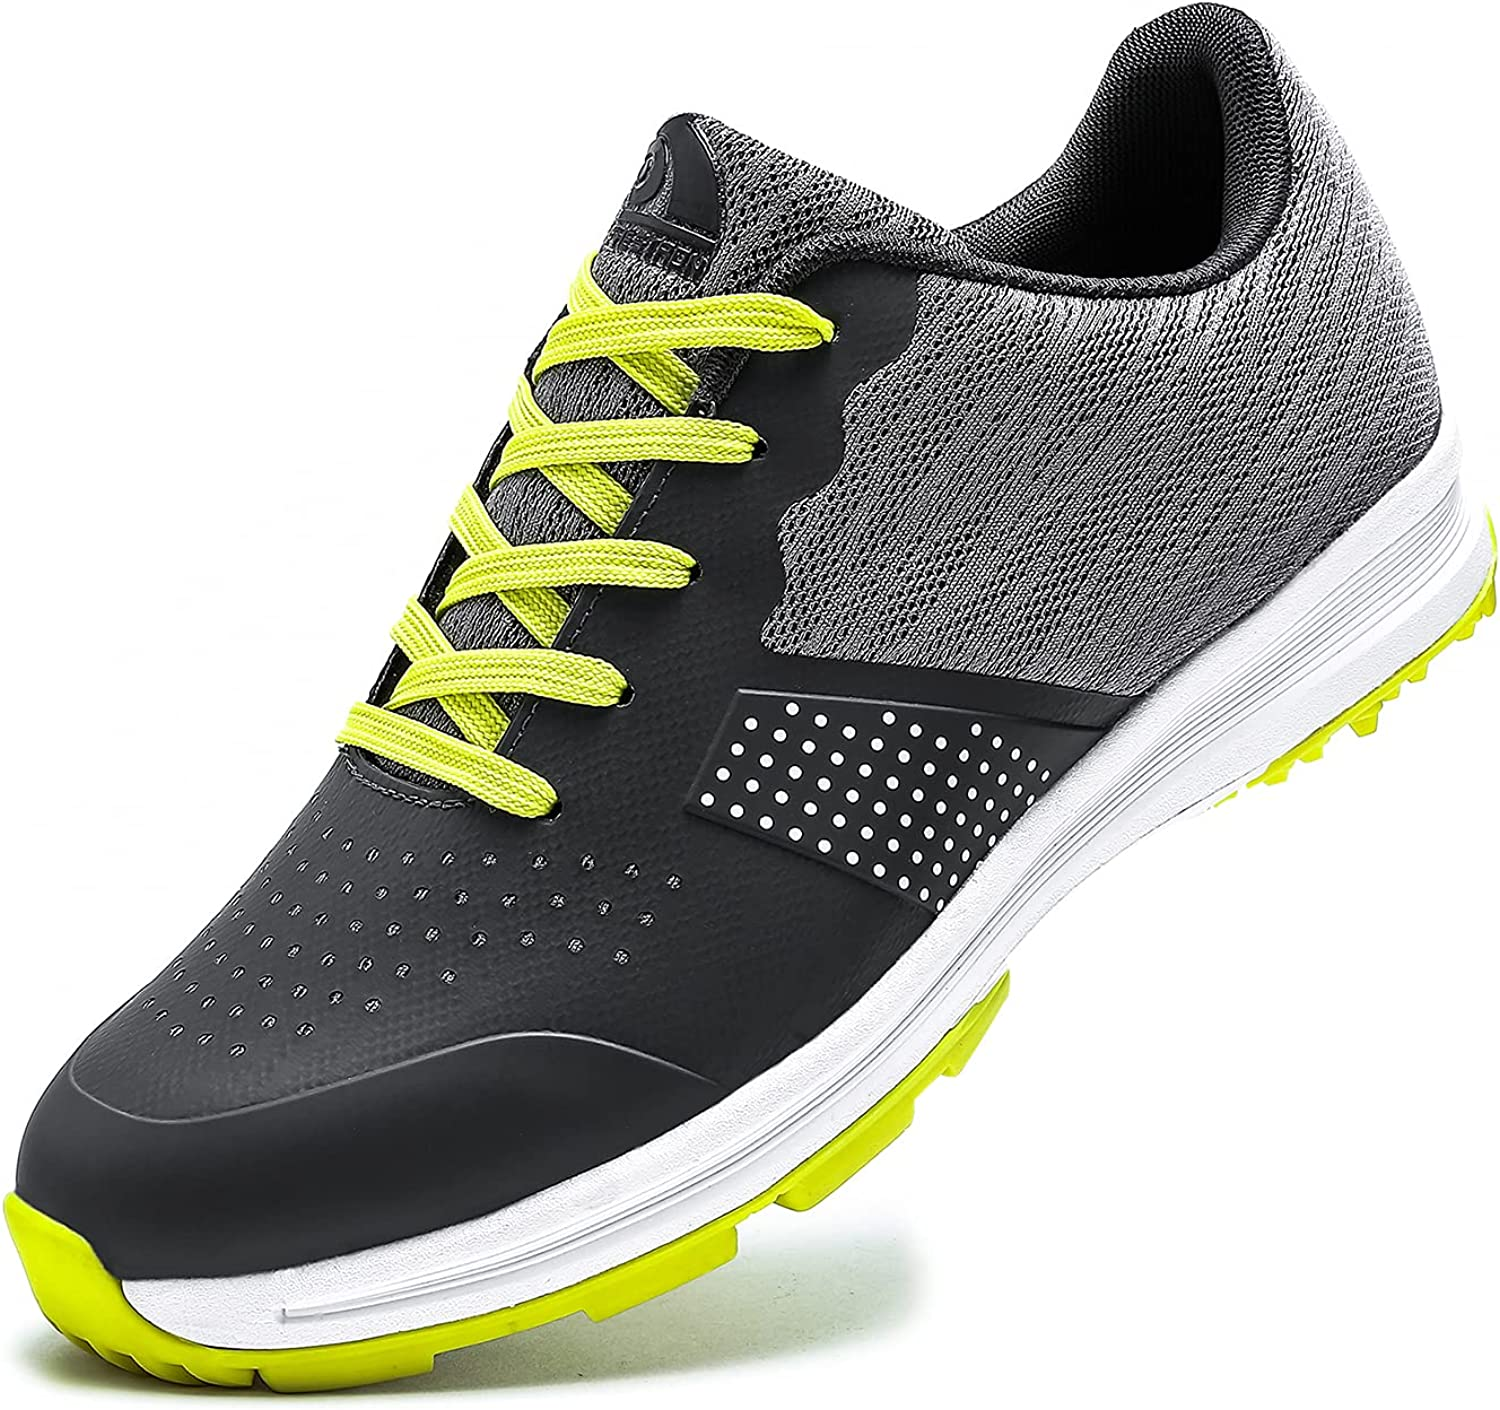 Thestron Men's Golf Shoes Walking Sports Training High material Price reduction Sneakers